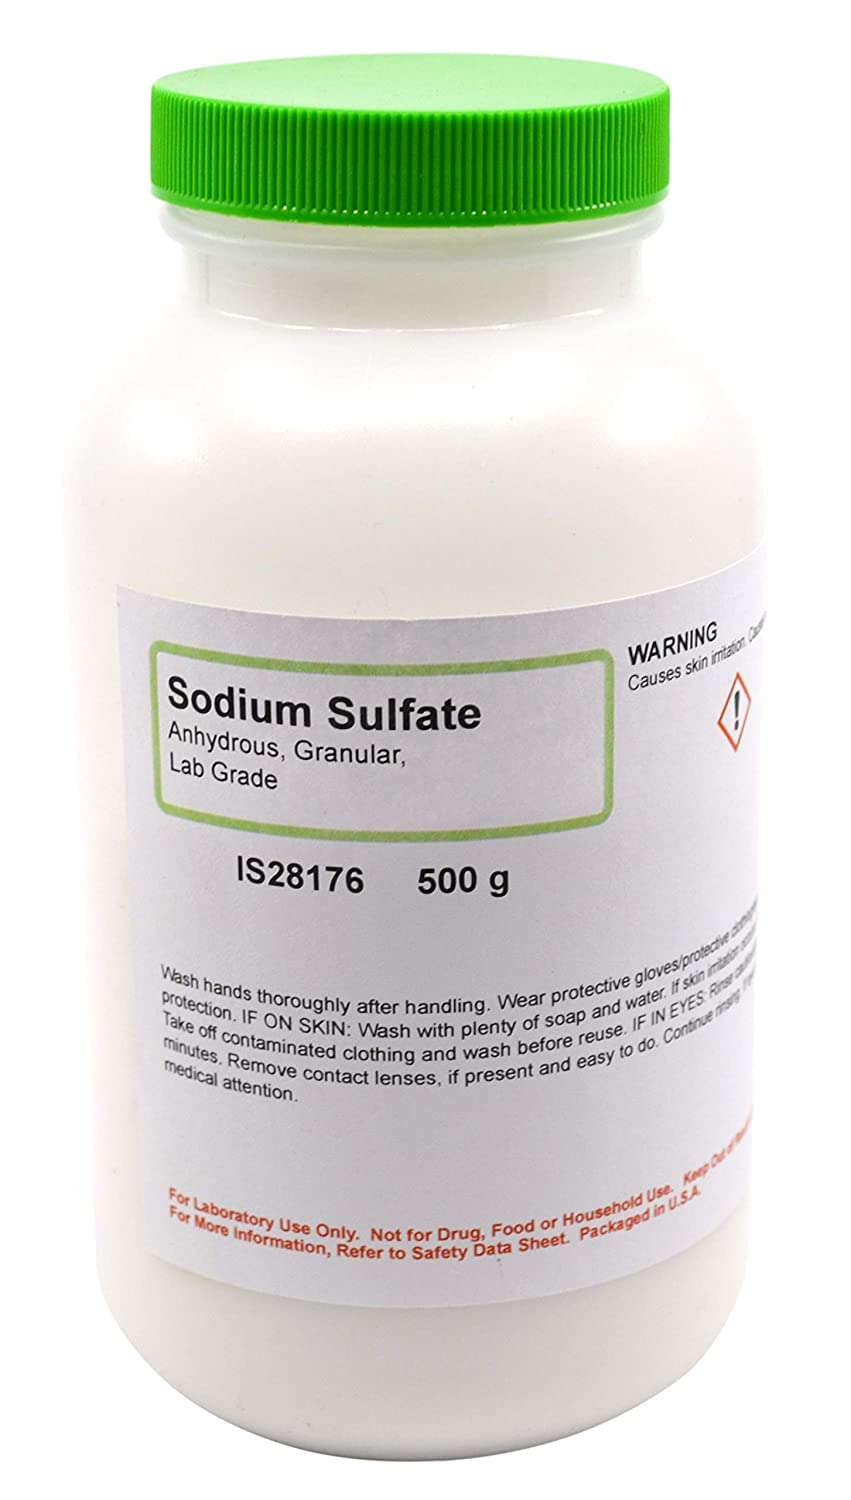 Laboratory-Grade Sodium Sulfate, Granular, Anhydrous, 500g - The Curated Chemical Collection